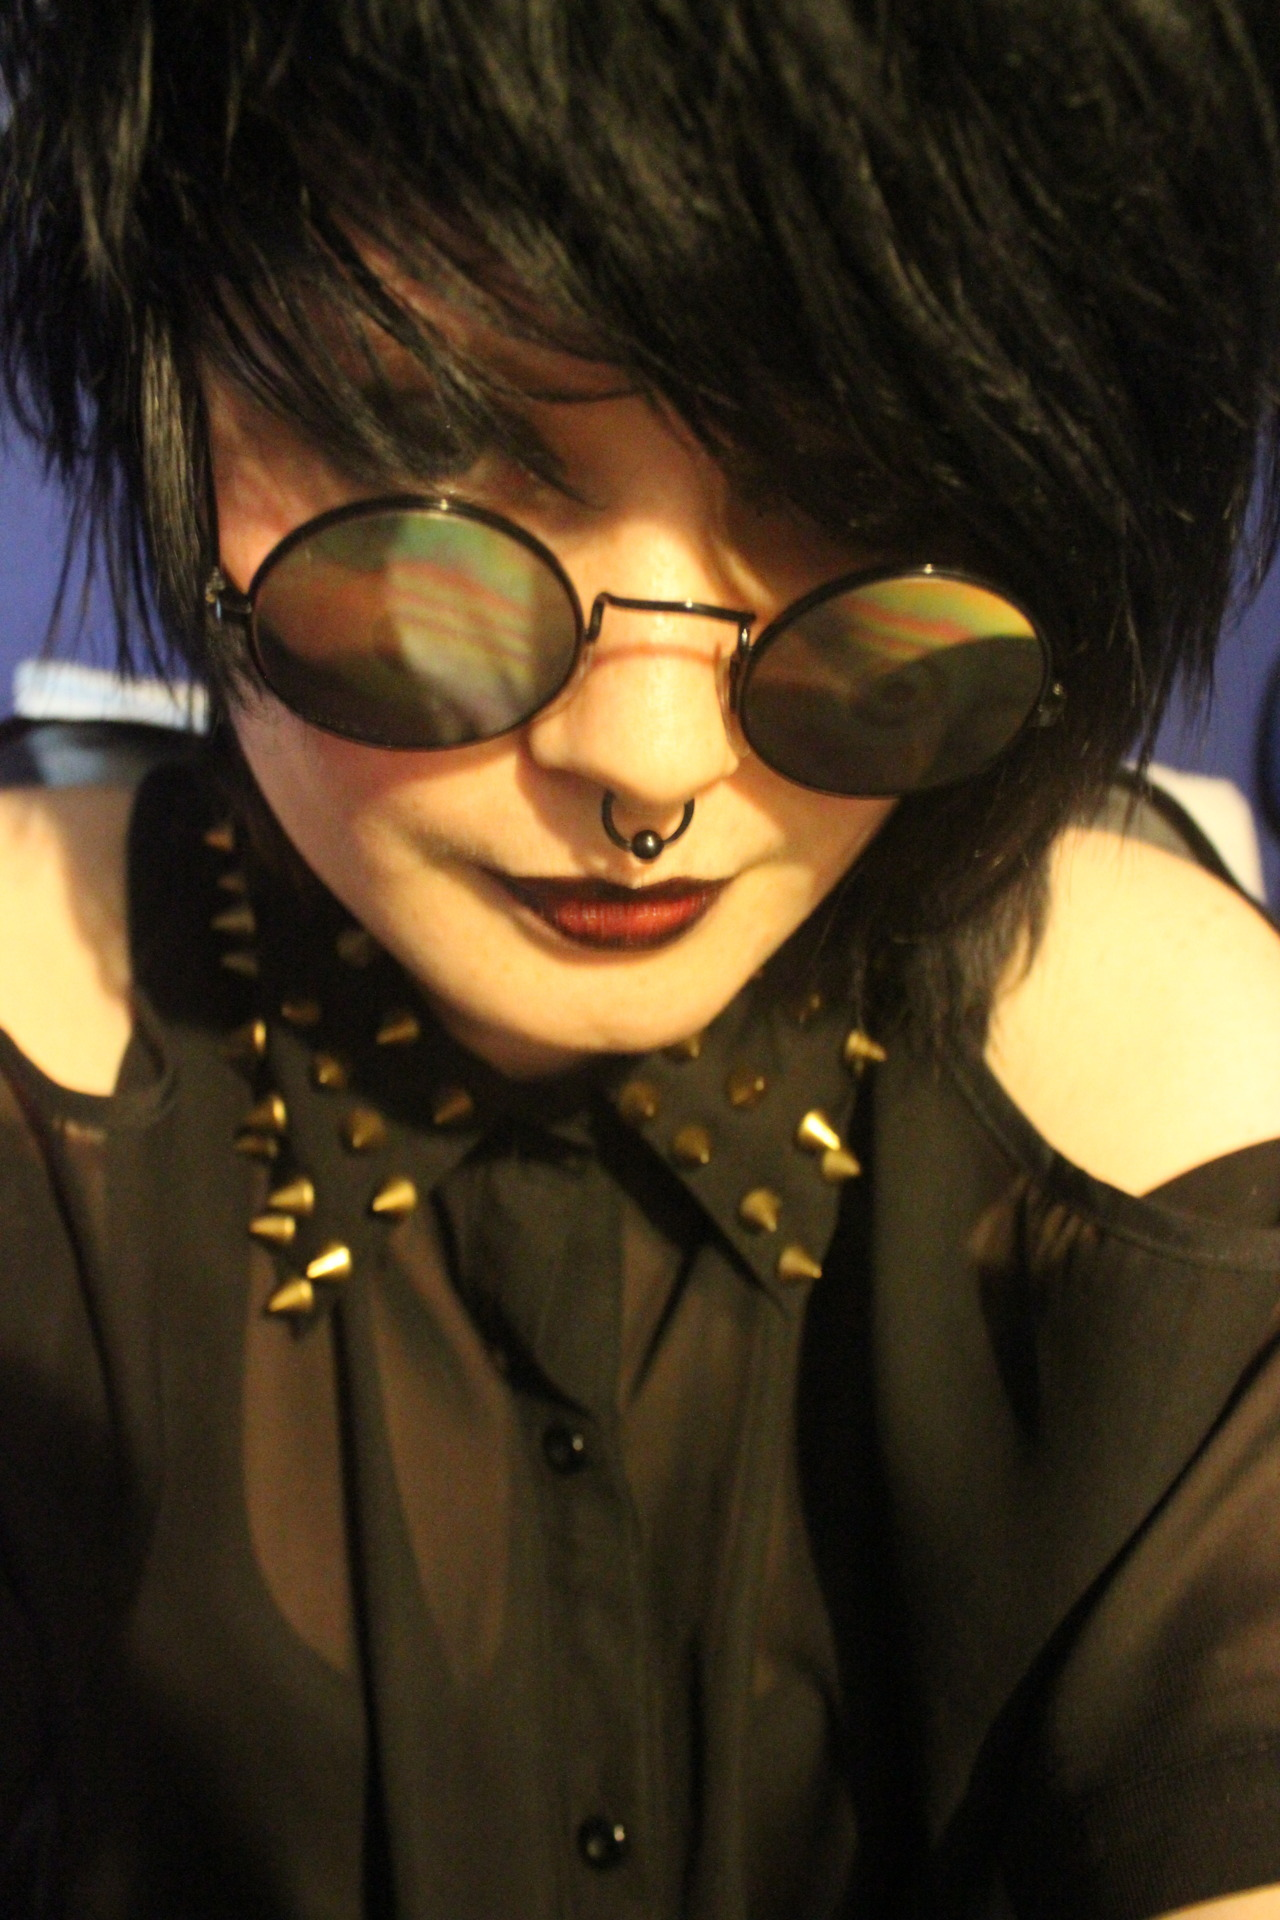 gothsandpunks:  I submit here far too much but I can't help it, I love this blog so much and just love being a part of it :'D